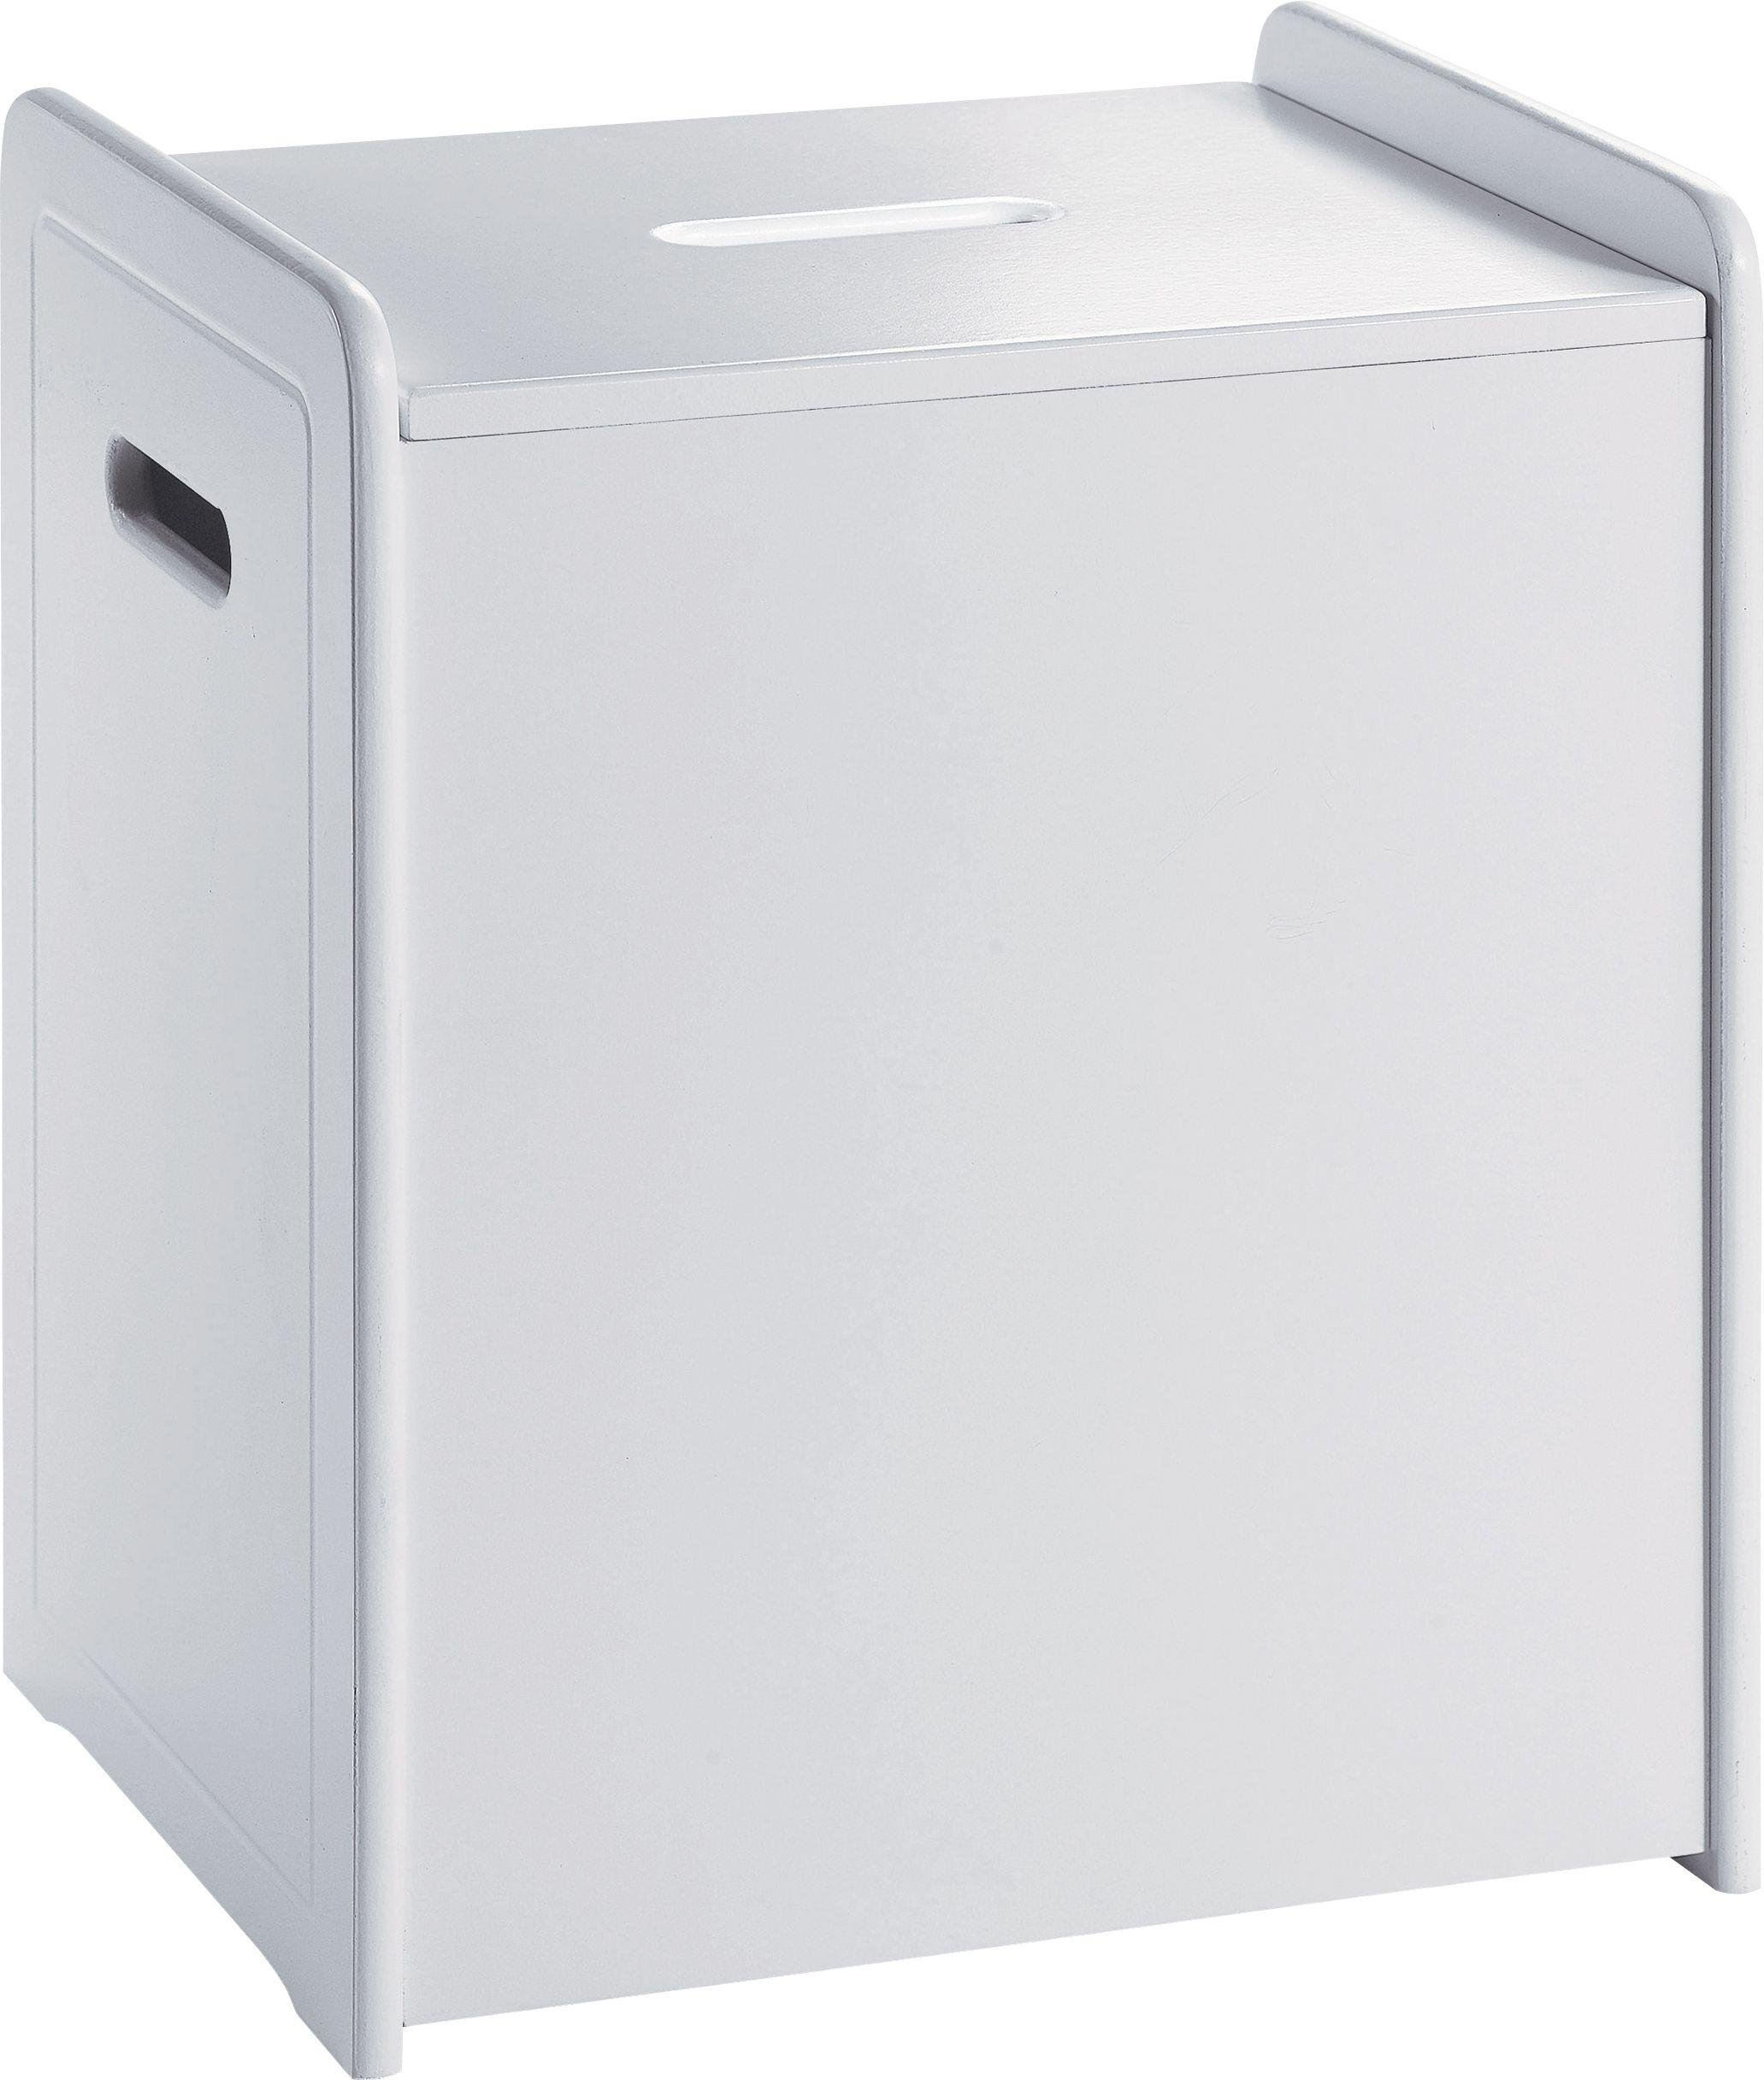 collection-laundry-bin-white